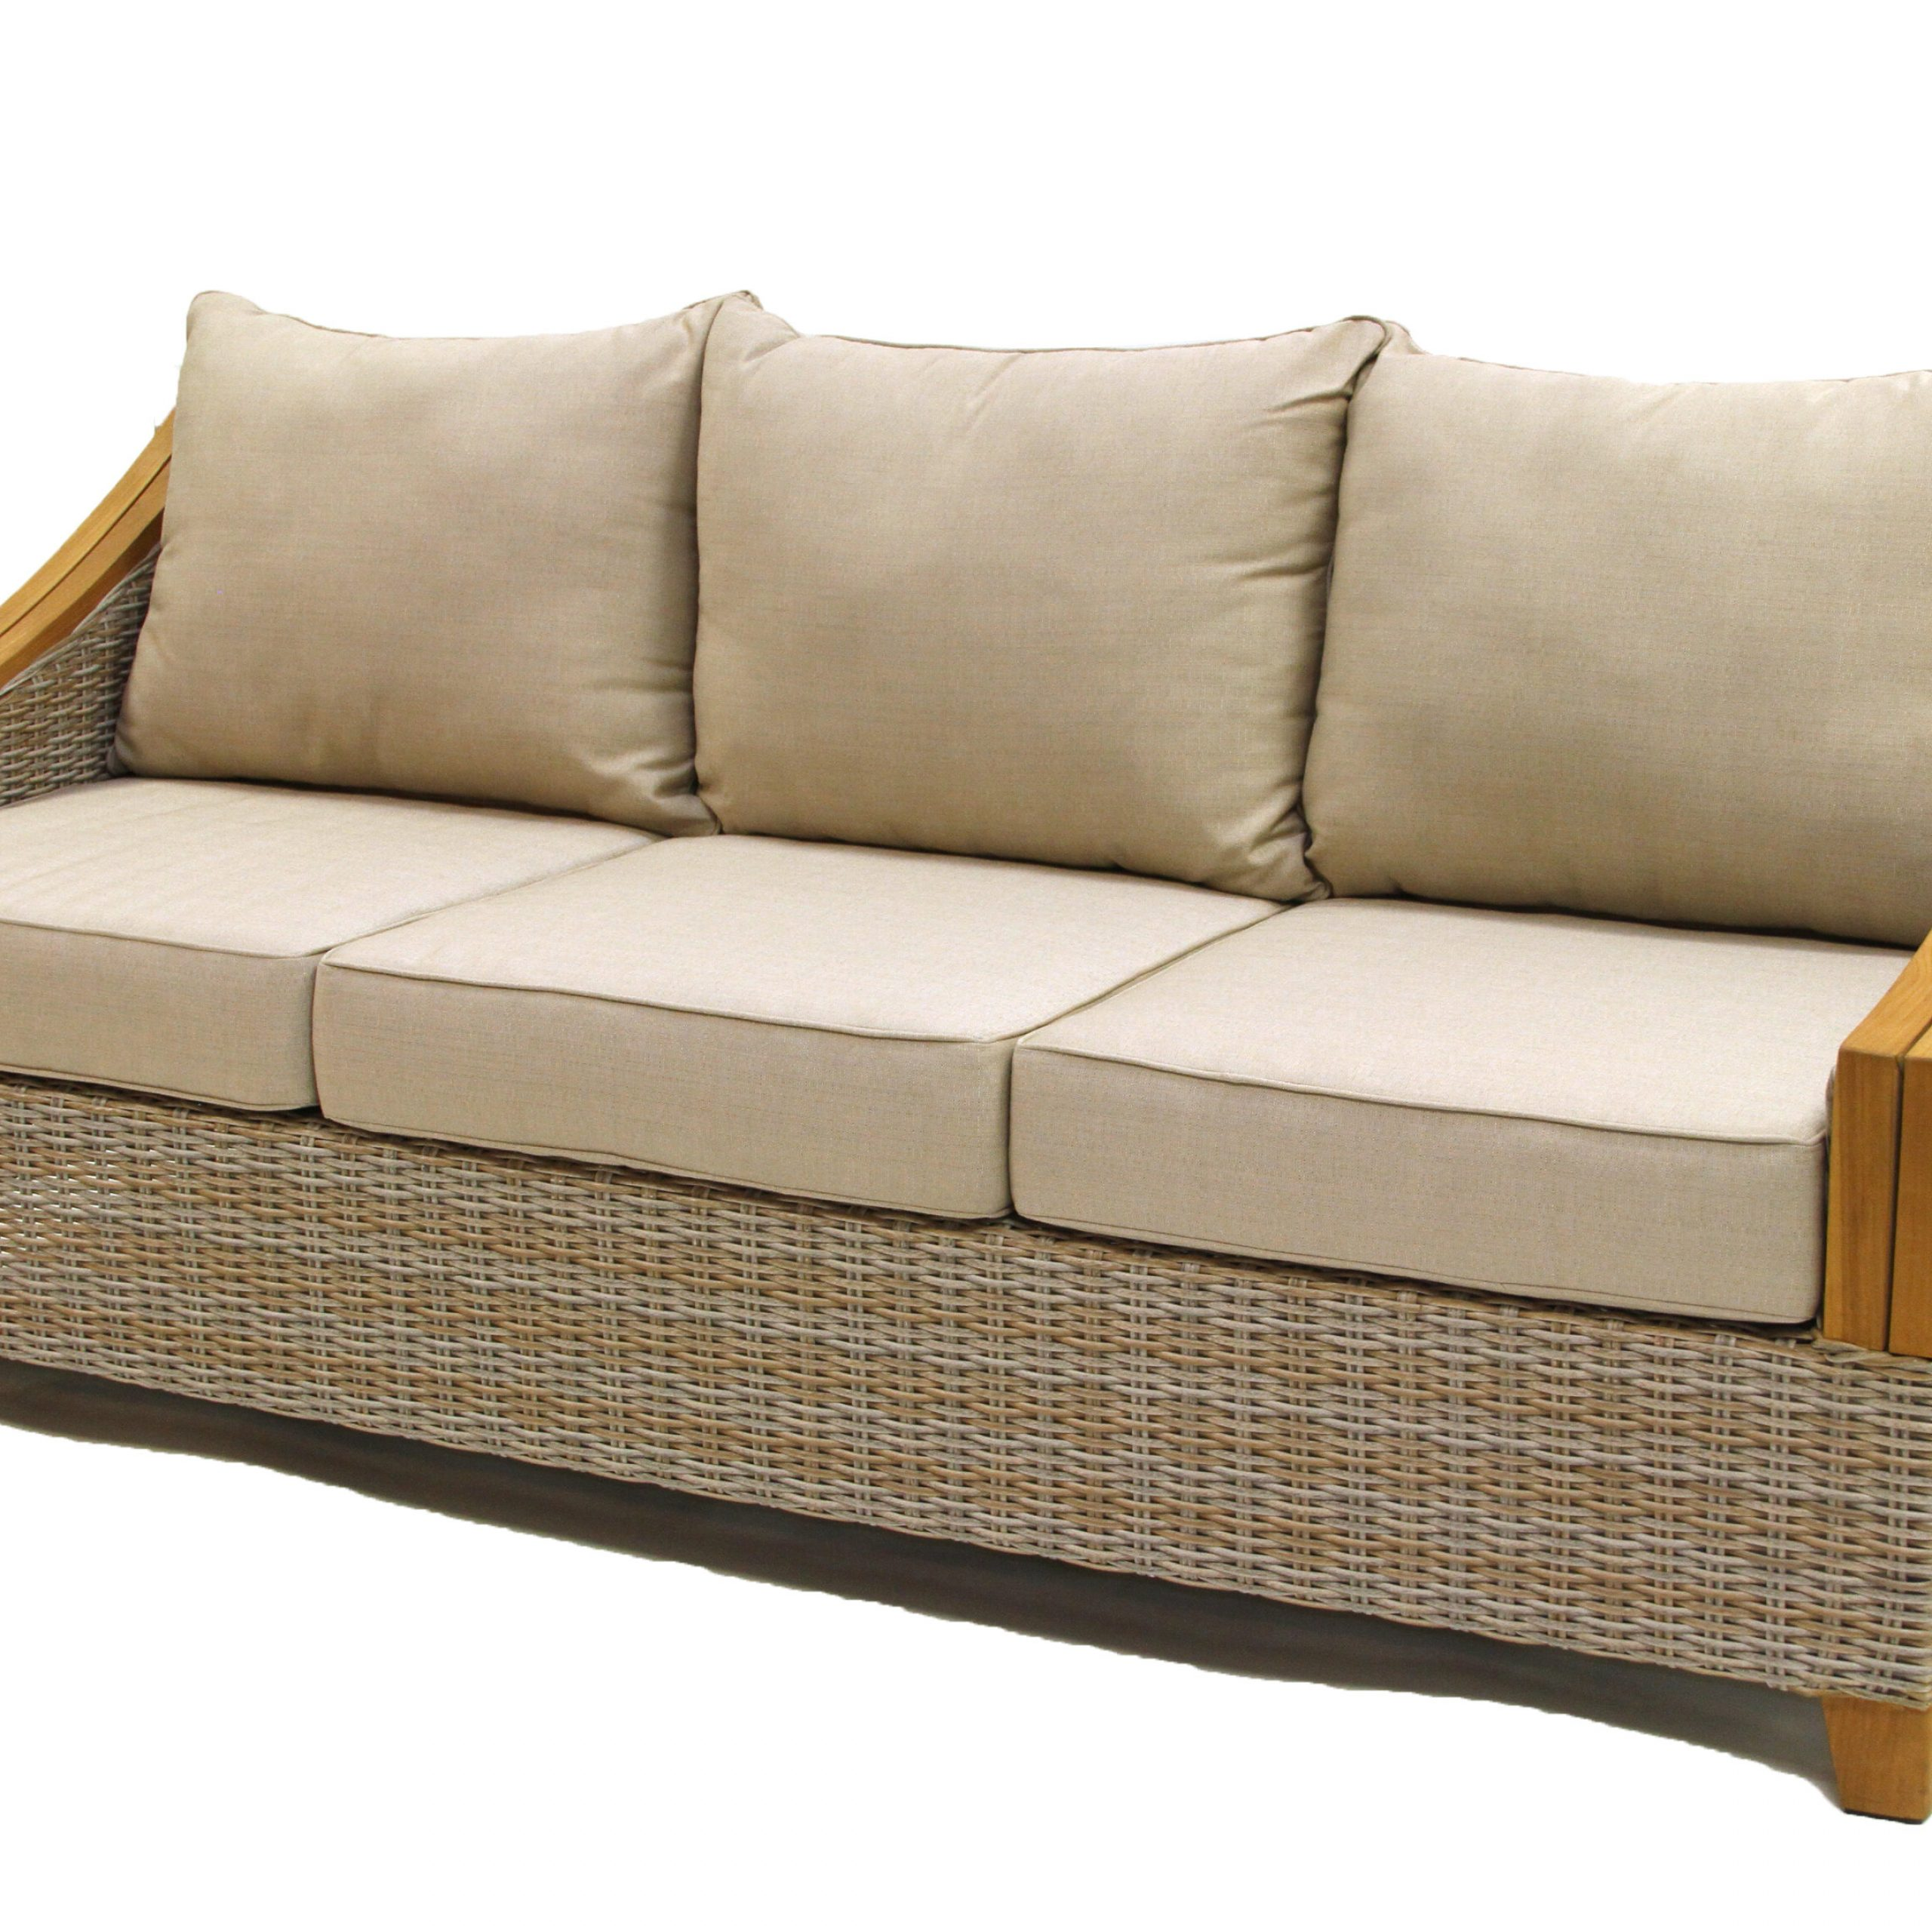 Kincaid Teak Patio Sofa With Sunbrella Cushions For Preferred Wakeland Wicker Loveseats With Cushions (View 10 of 25)